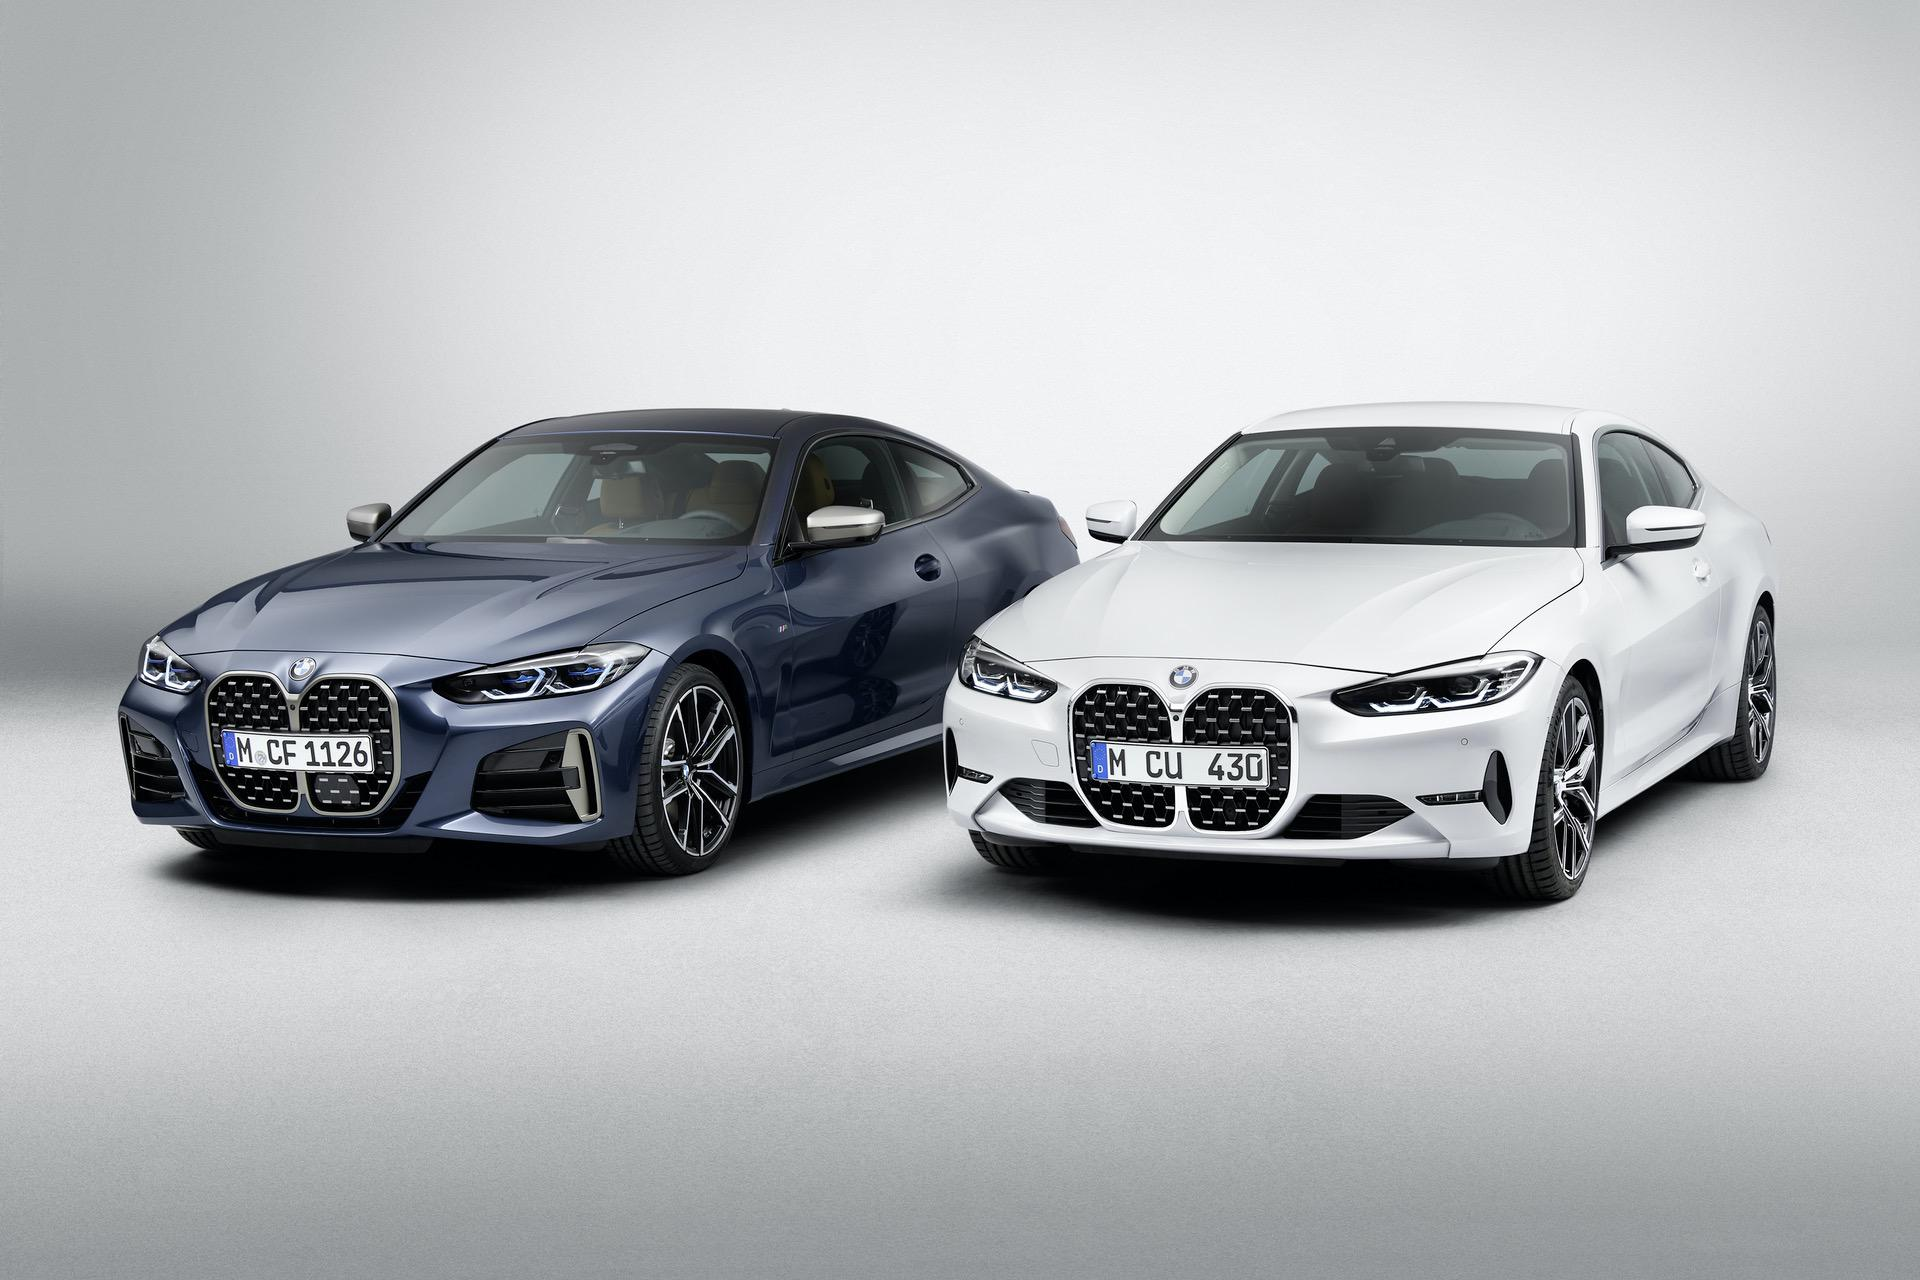 Which BMW 4 Series Looks Better: M Sport or Standard?